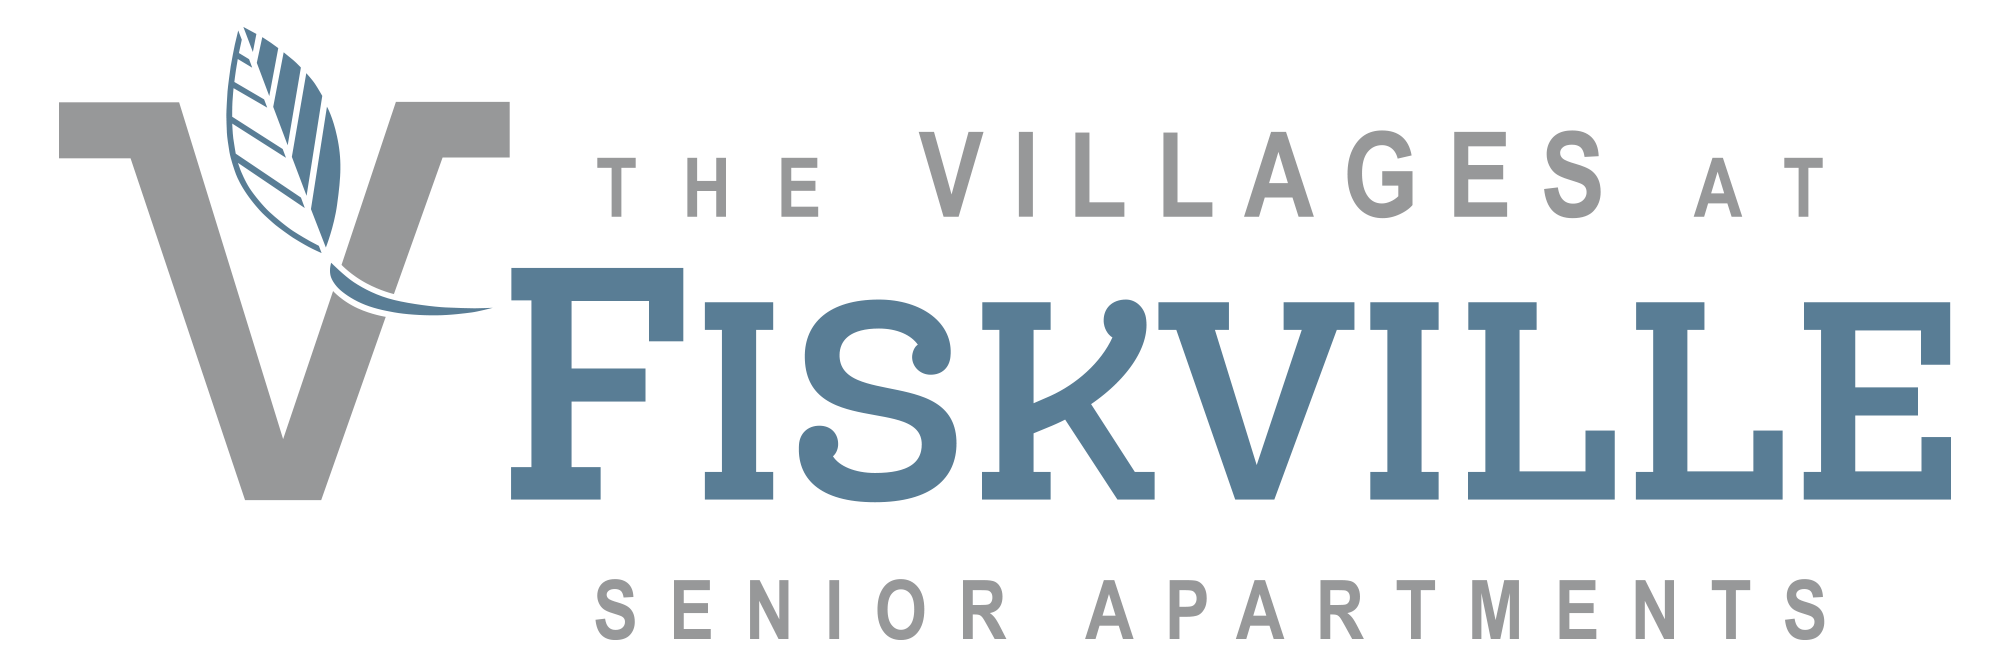 The Villages at Fiskville logo